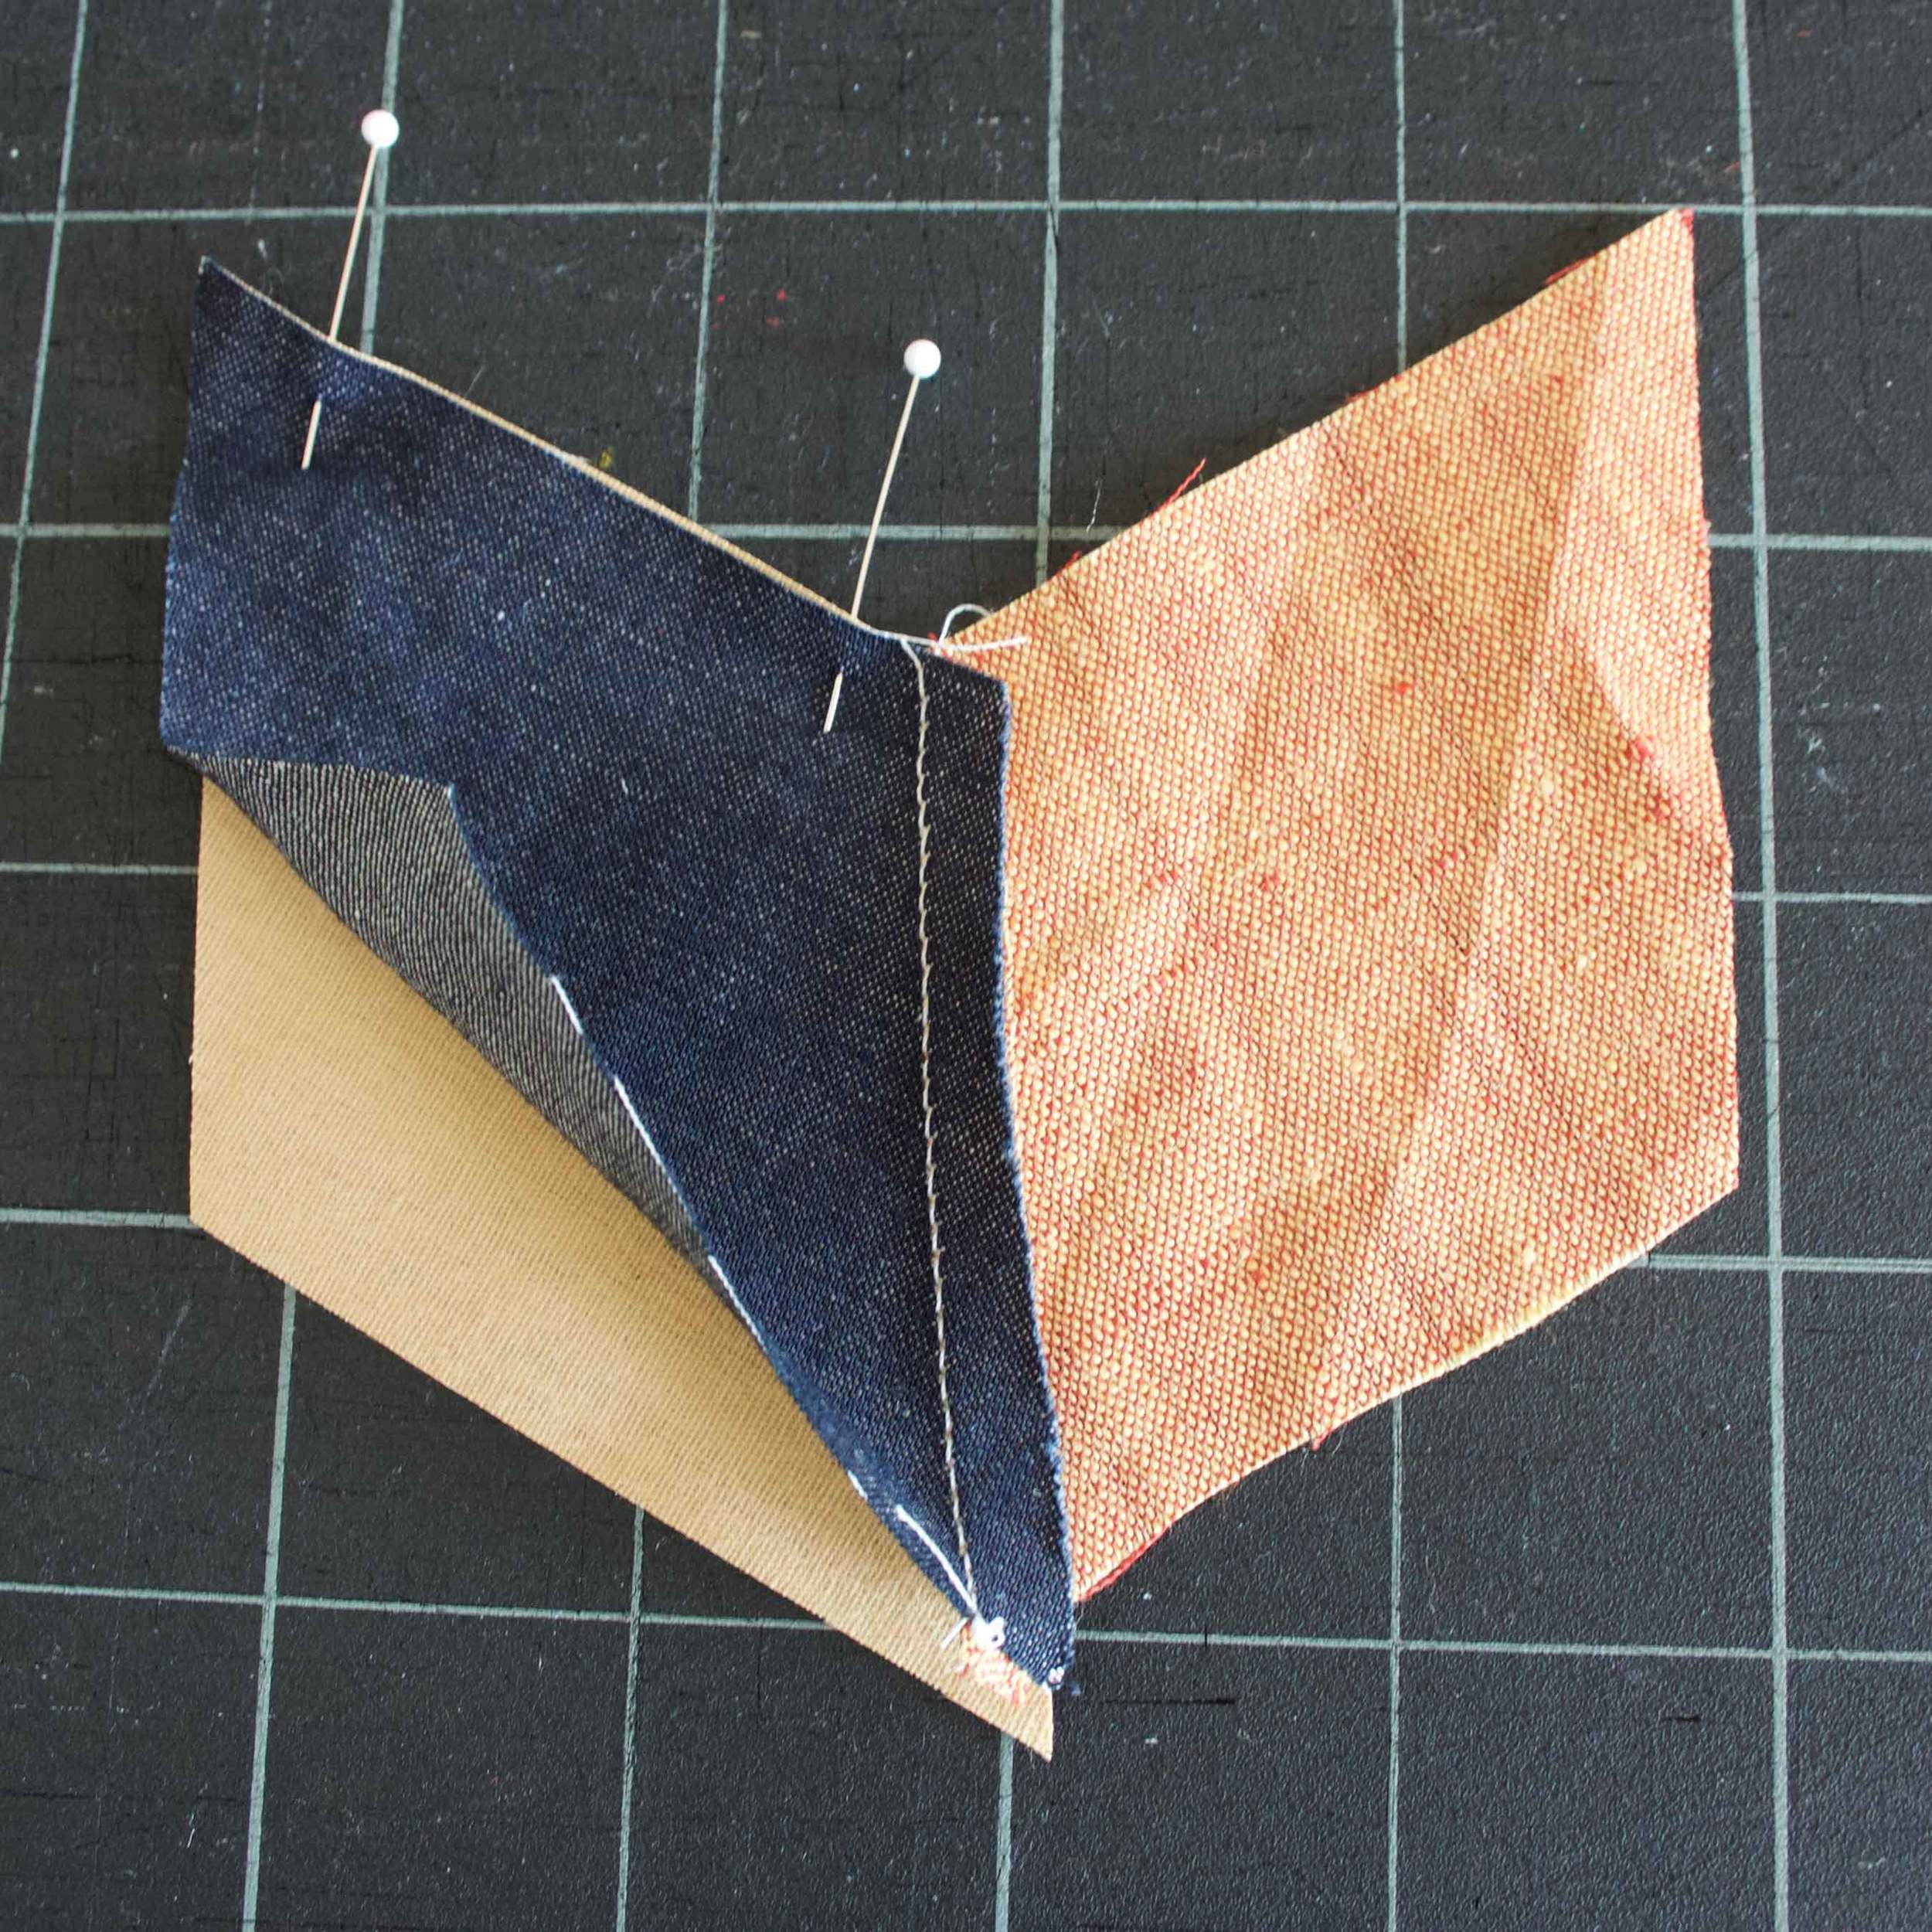 Pinned pieces to make a mini quilted coaster, tutorial at Thread & Whisk